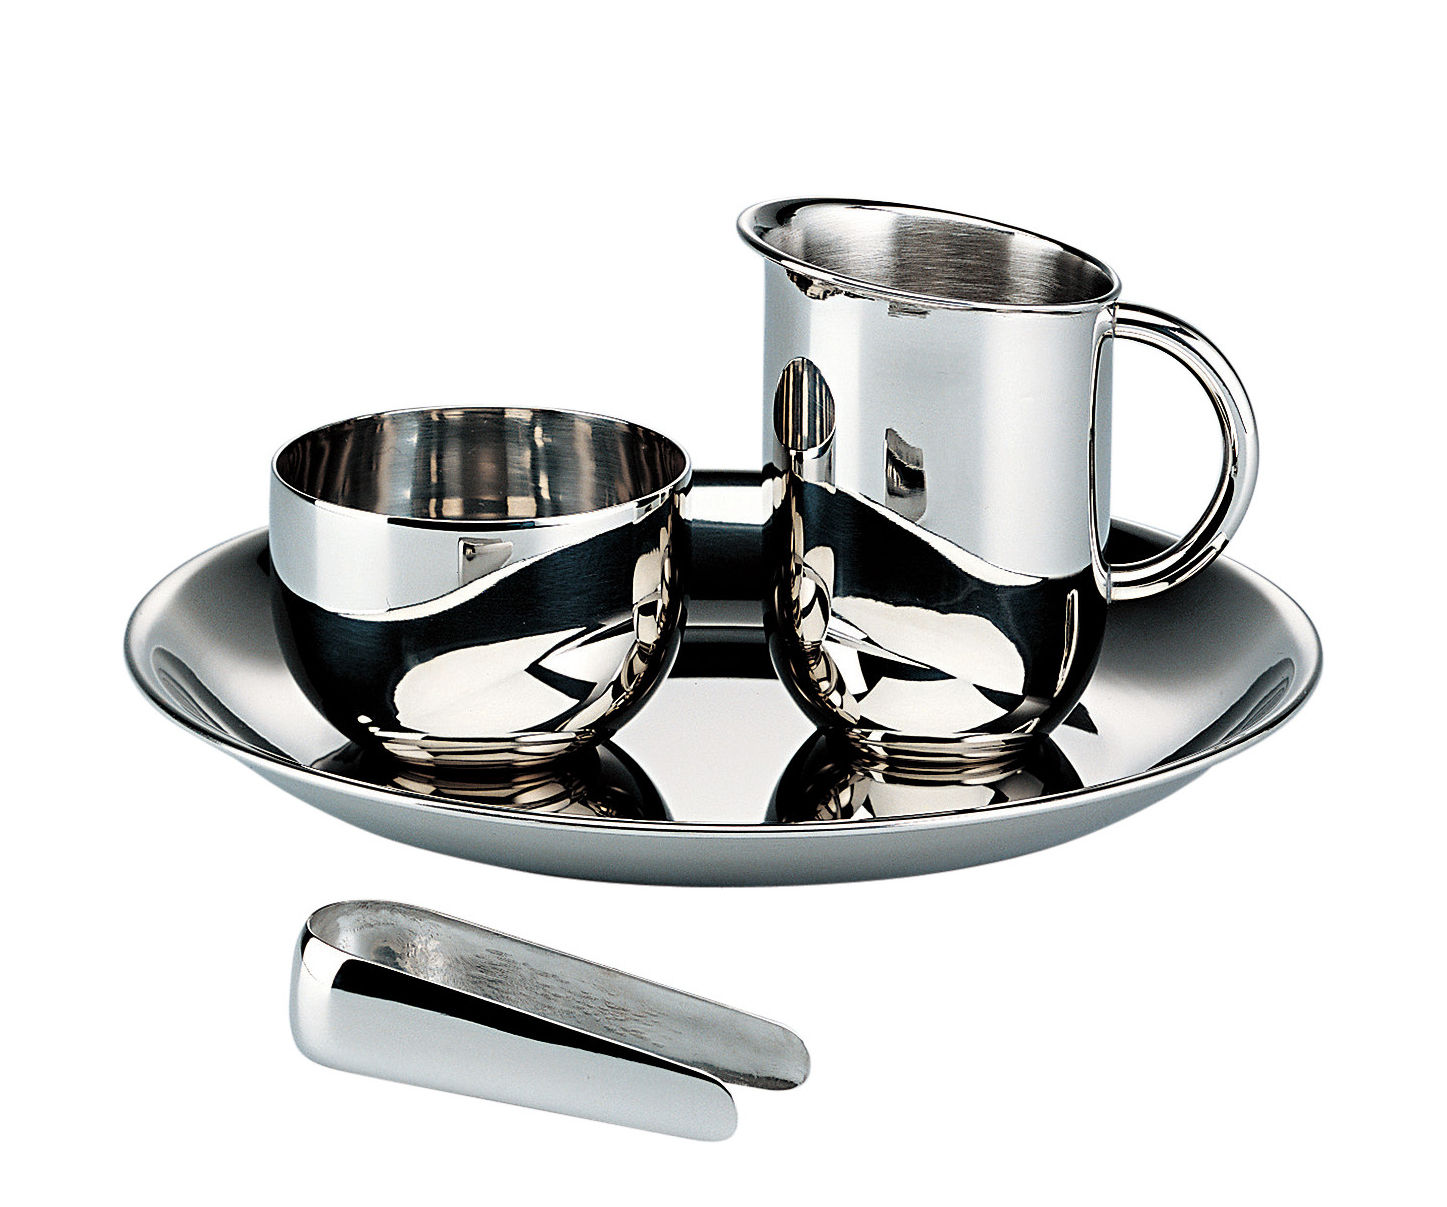 Tableware - Tea & Coffee Accessories - 100 ans Bauhaus Coffee set - / (1928) - Creamer + sugar bowl with tongs + tray by Alessi - Steel - Glossy stainless steel